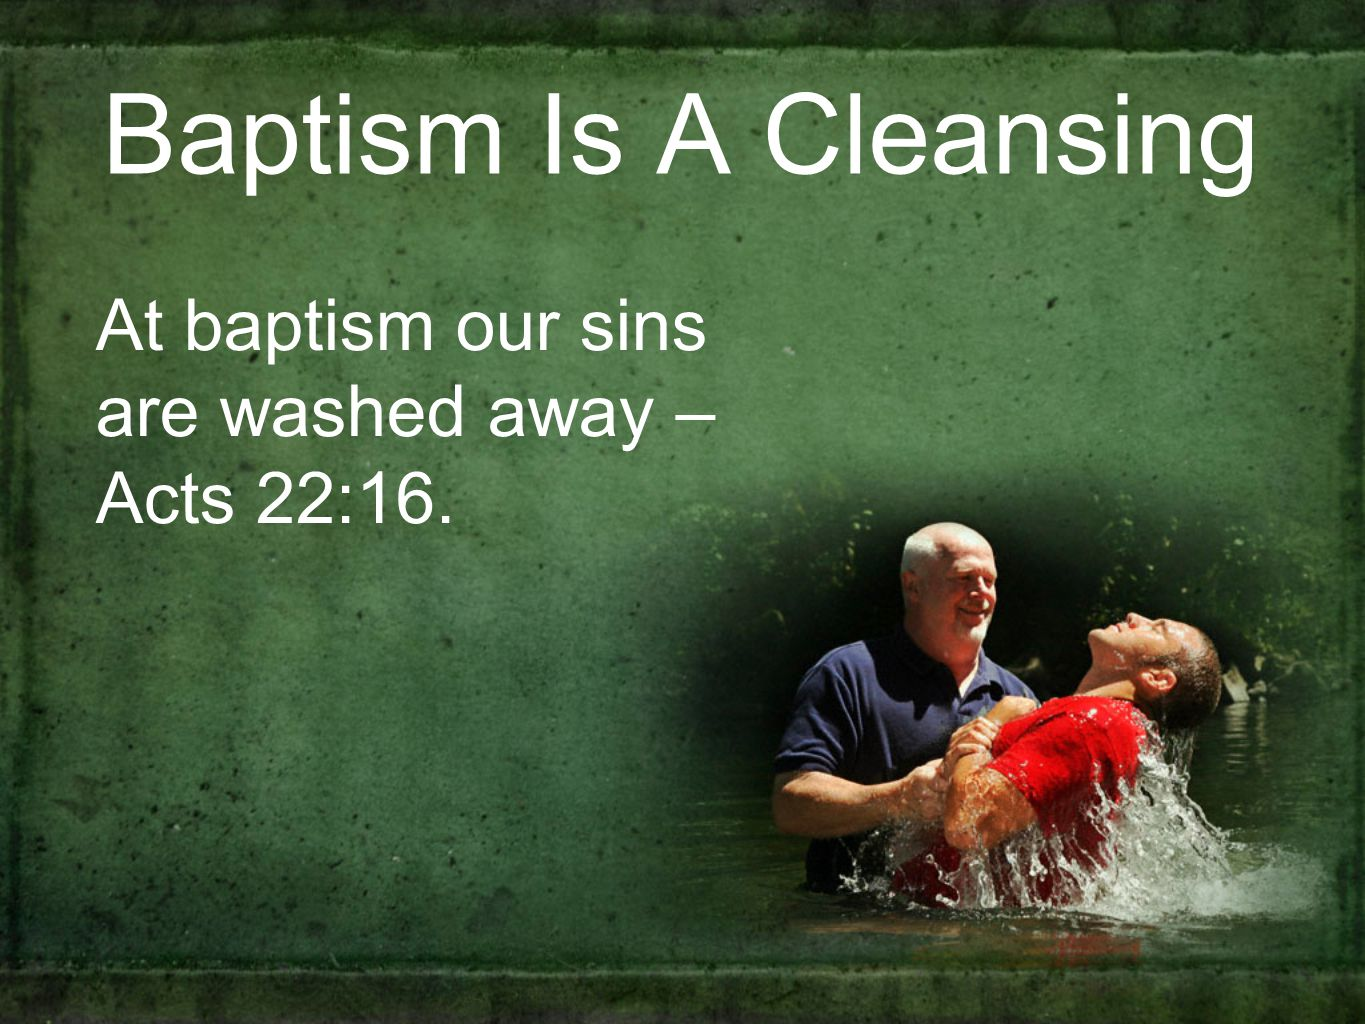 Baptism Is A Cleansing At baptism our sins are washed away – Acts 22:16.